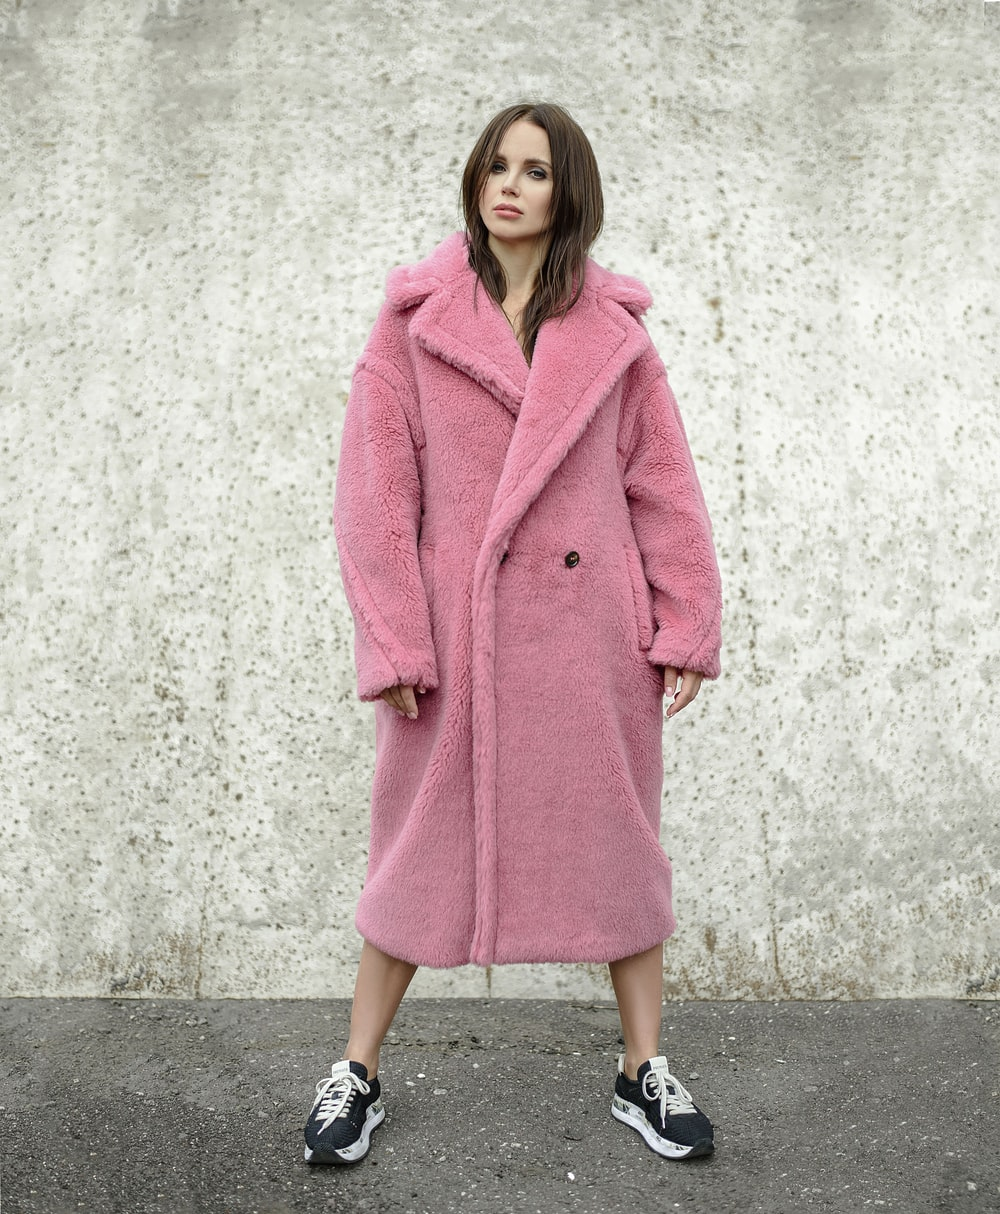 woman standing while wearing pink coat